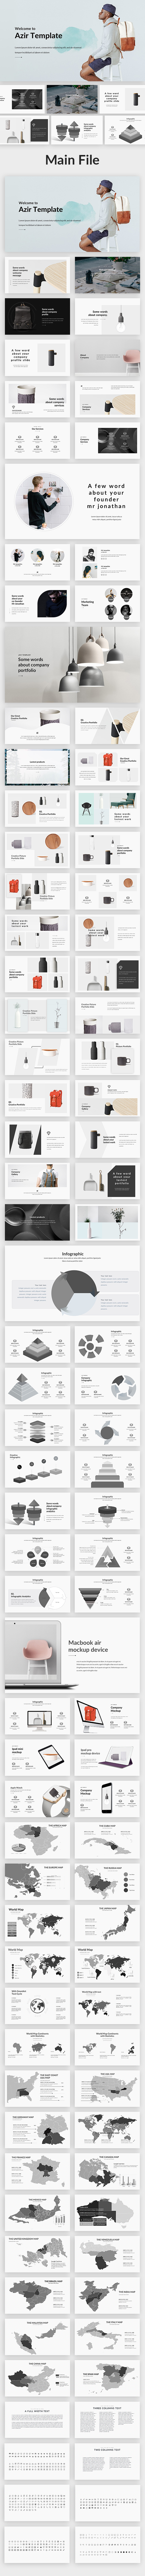 Azir - Creative Powerpoint Template - Creative PowerPoint Templates